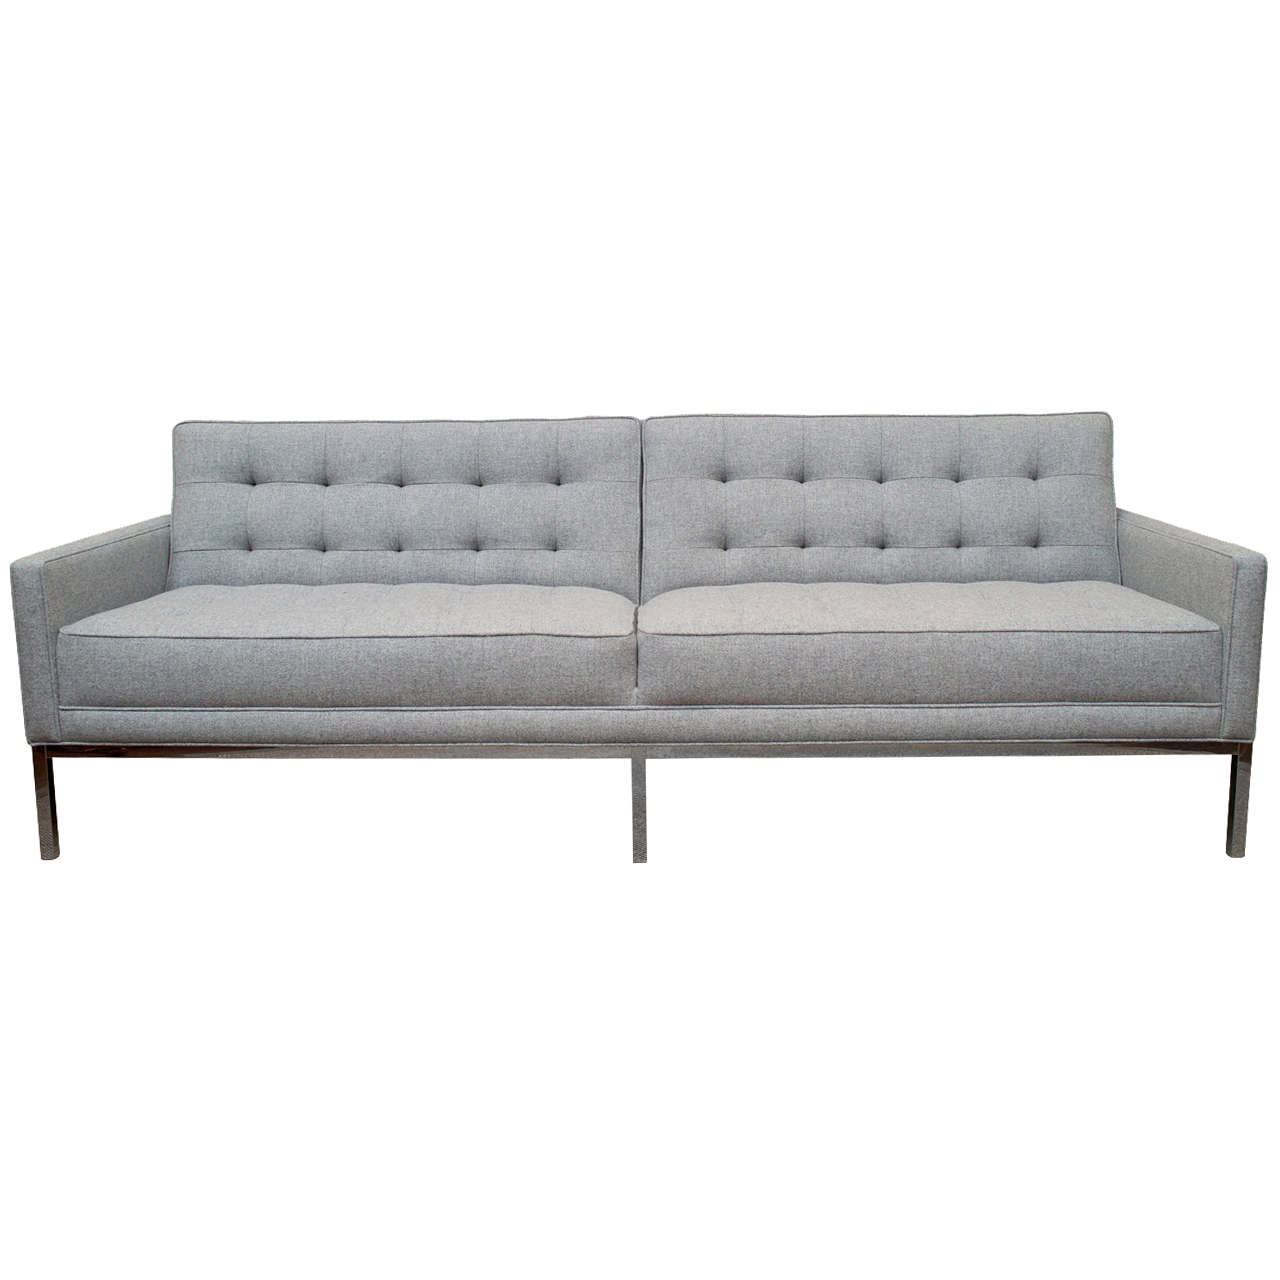 steelcase sofa bed dream design baci living room